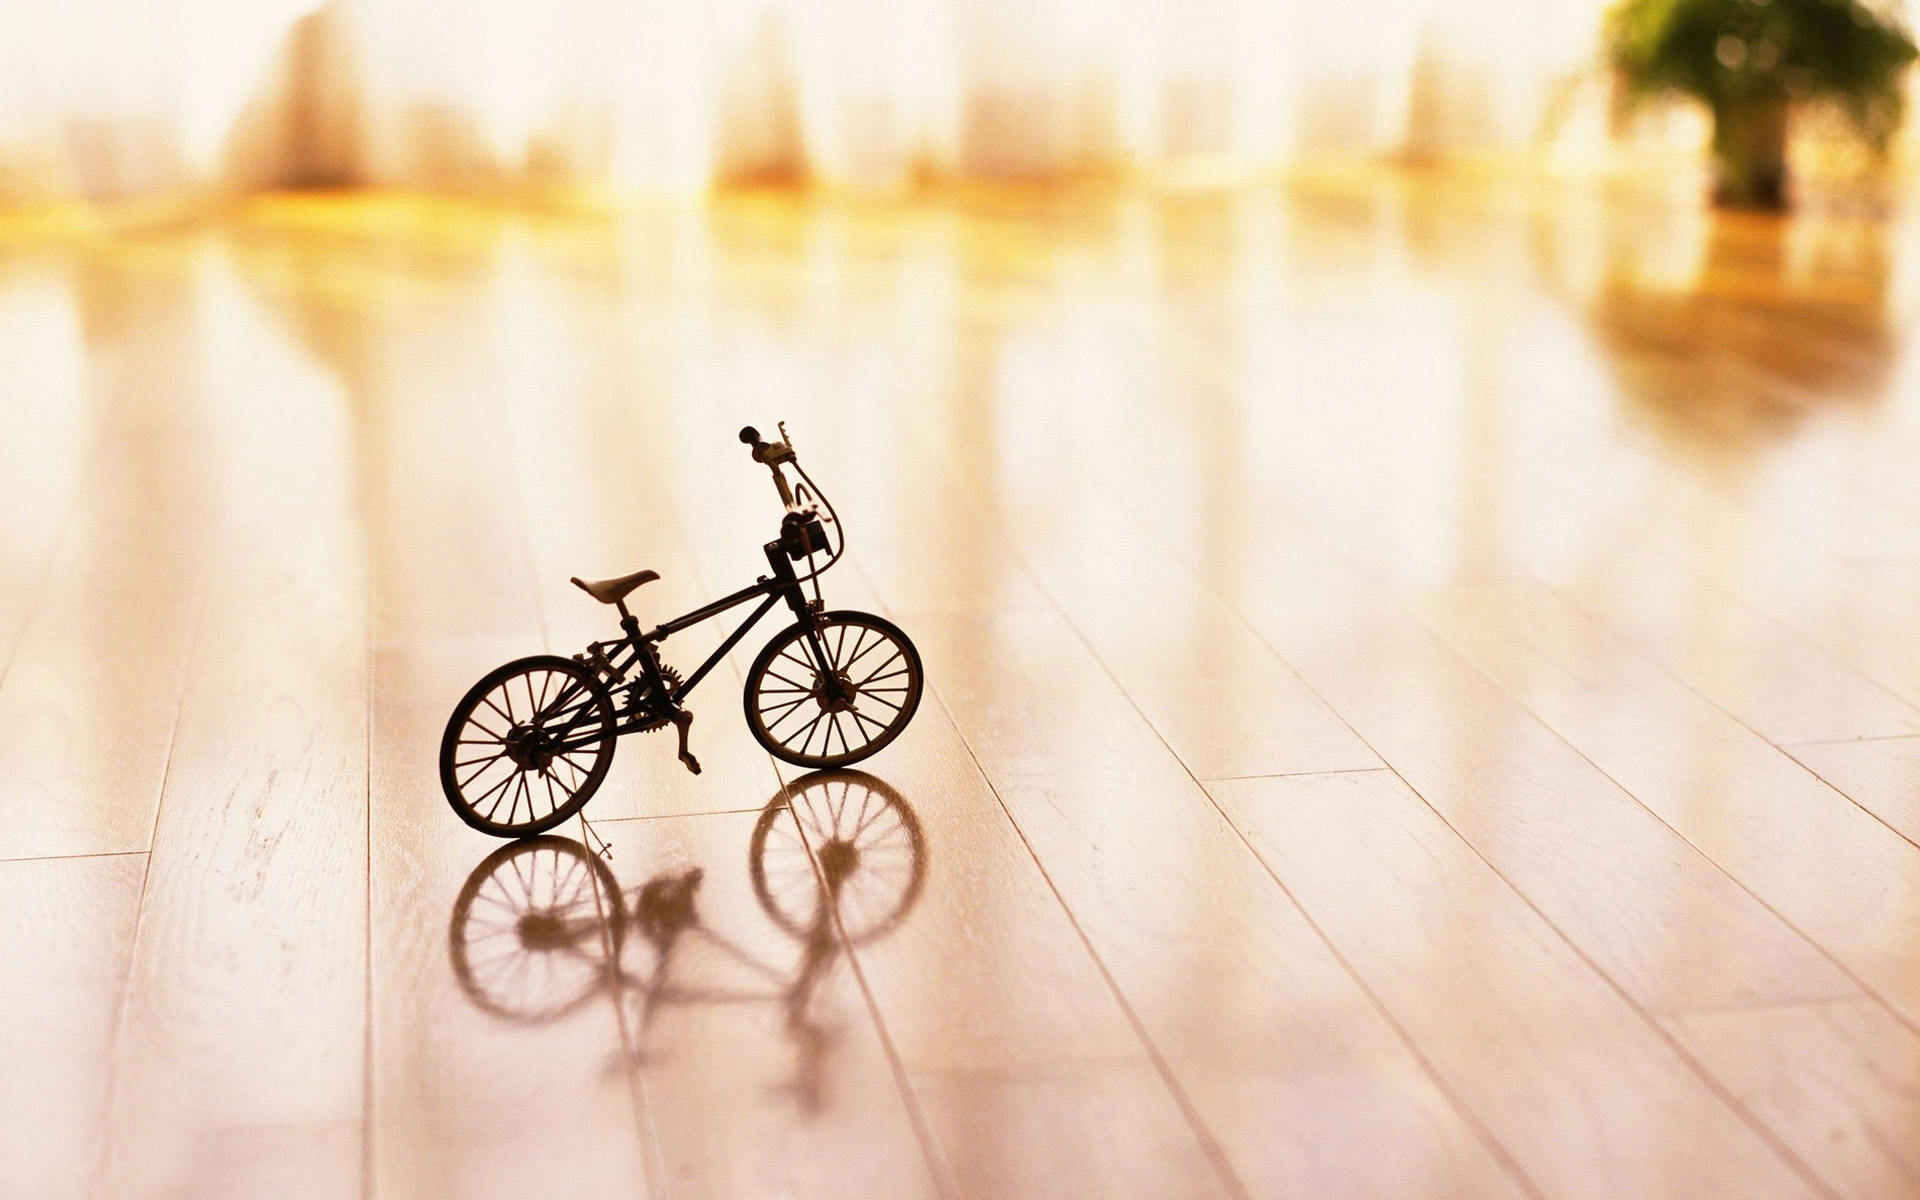 3d Wallpaper For Iphone 3gs Small Bicycle Prototype On The Wooden Ground Hd Wallpaper